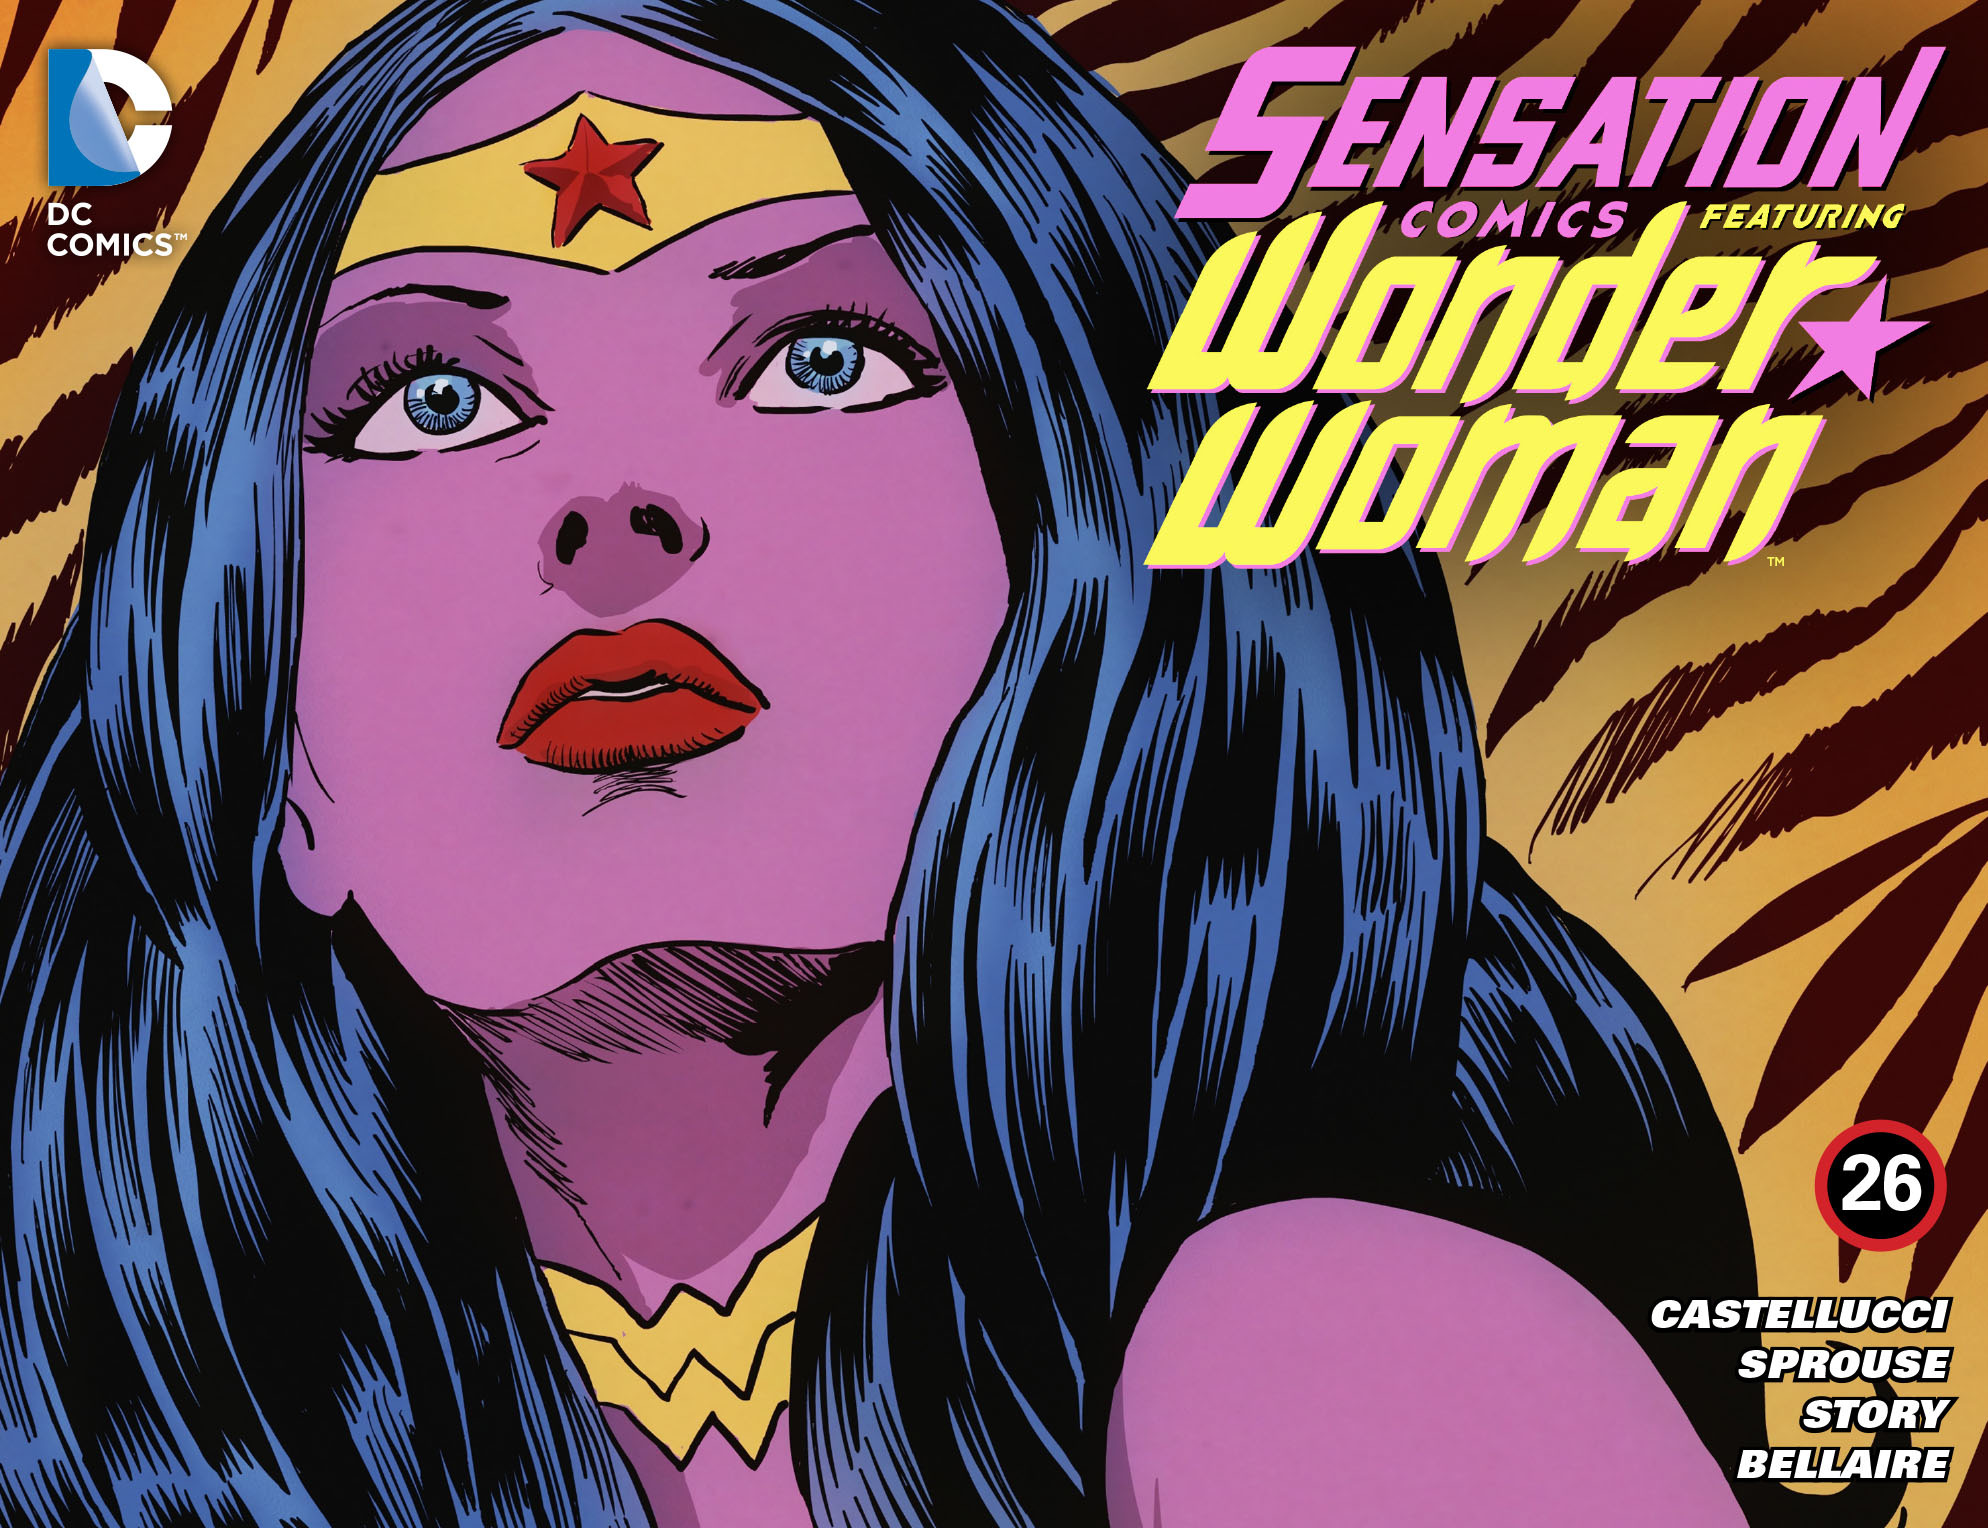 Read online Sensation Comics Featuring Wonder Woman comic -  Issue #26 - 1